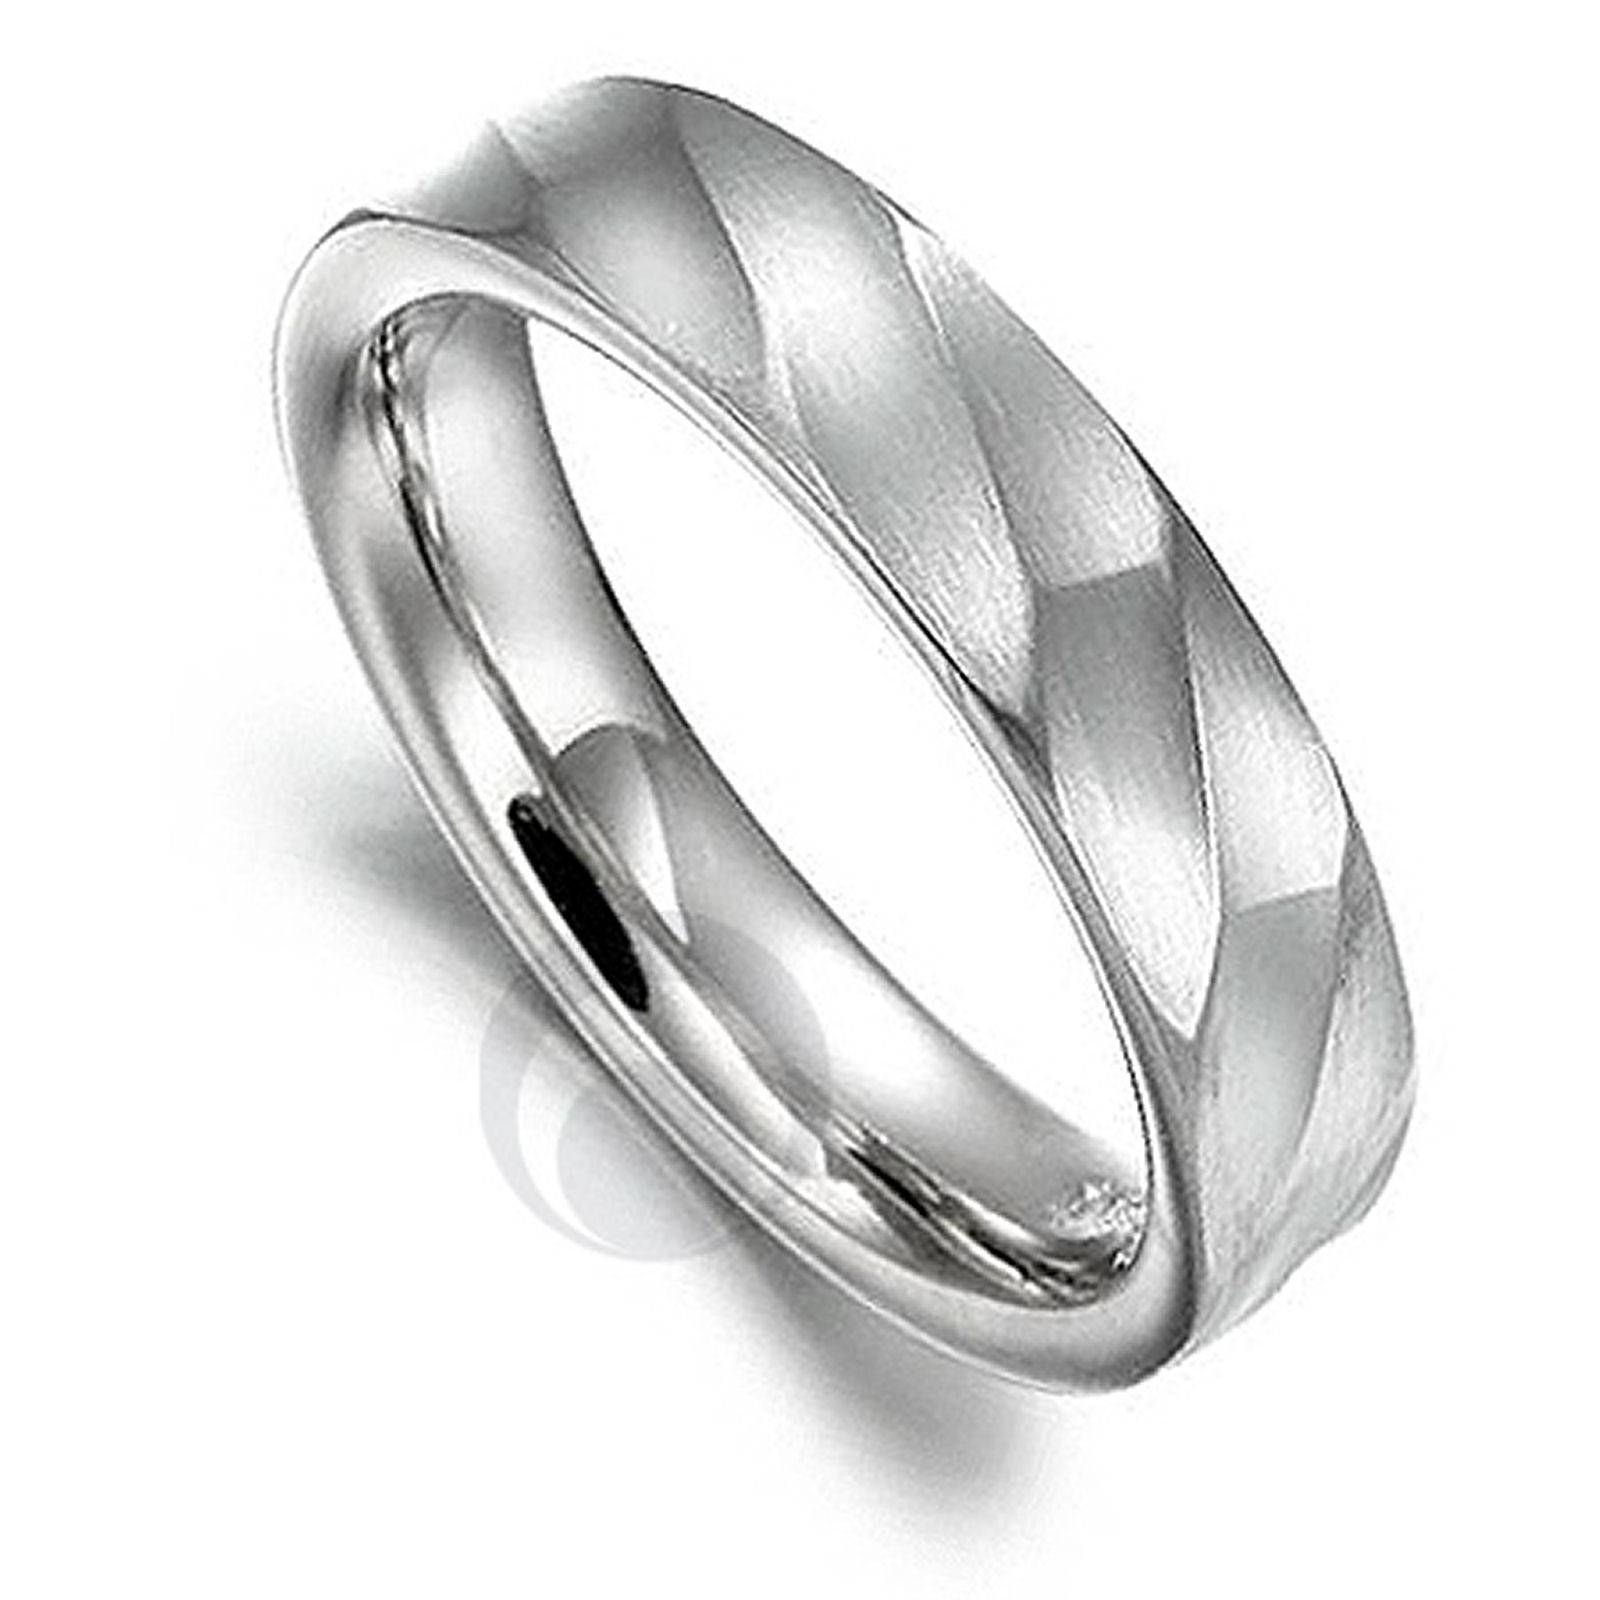 Mens Outdoor Wedding Rings Inspirational Platinum Wedding Band Men Inside Men's Outdoor Wedding Bands (View 10 of 15)